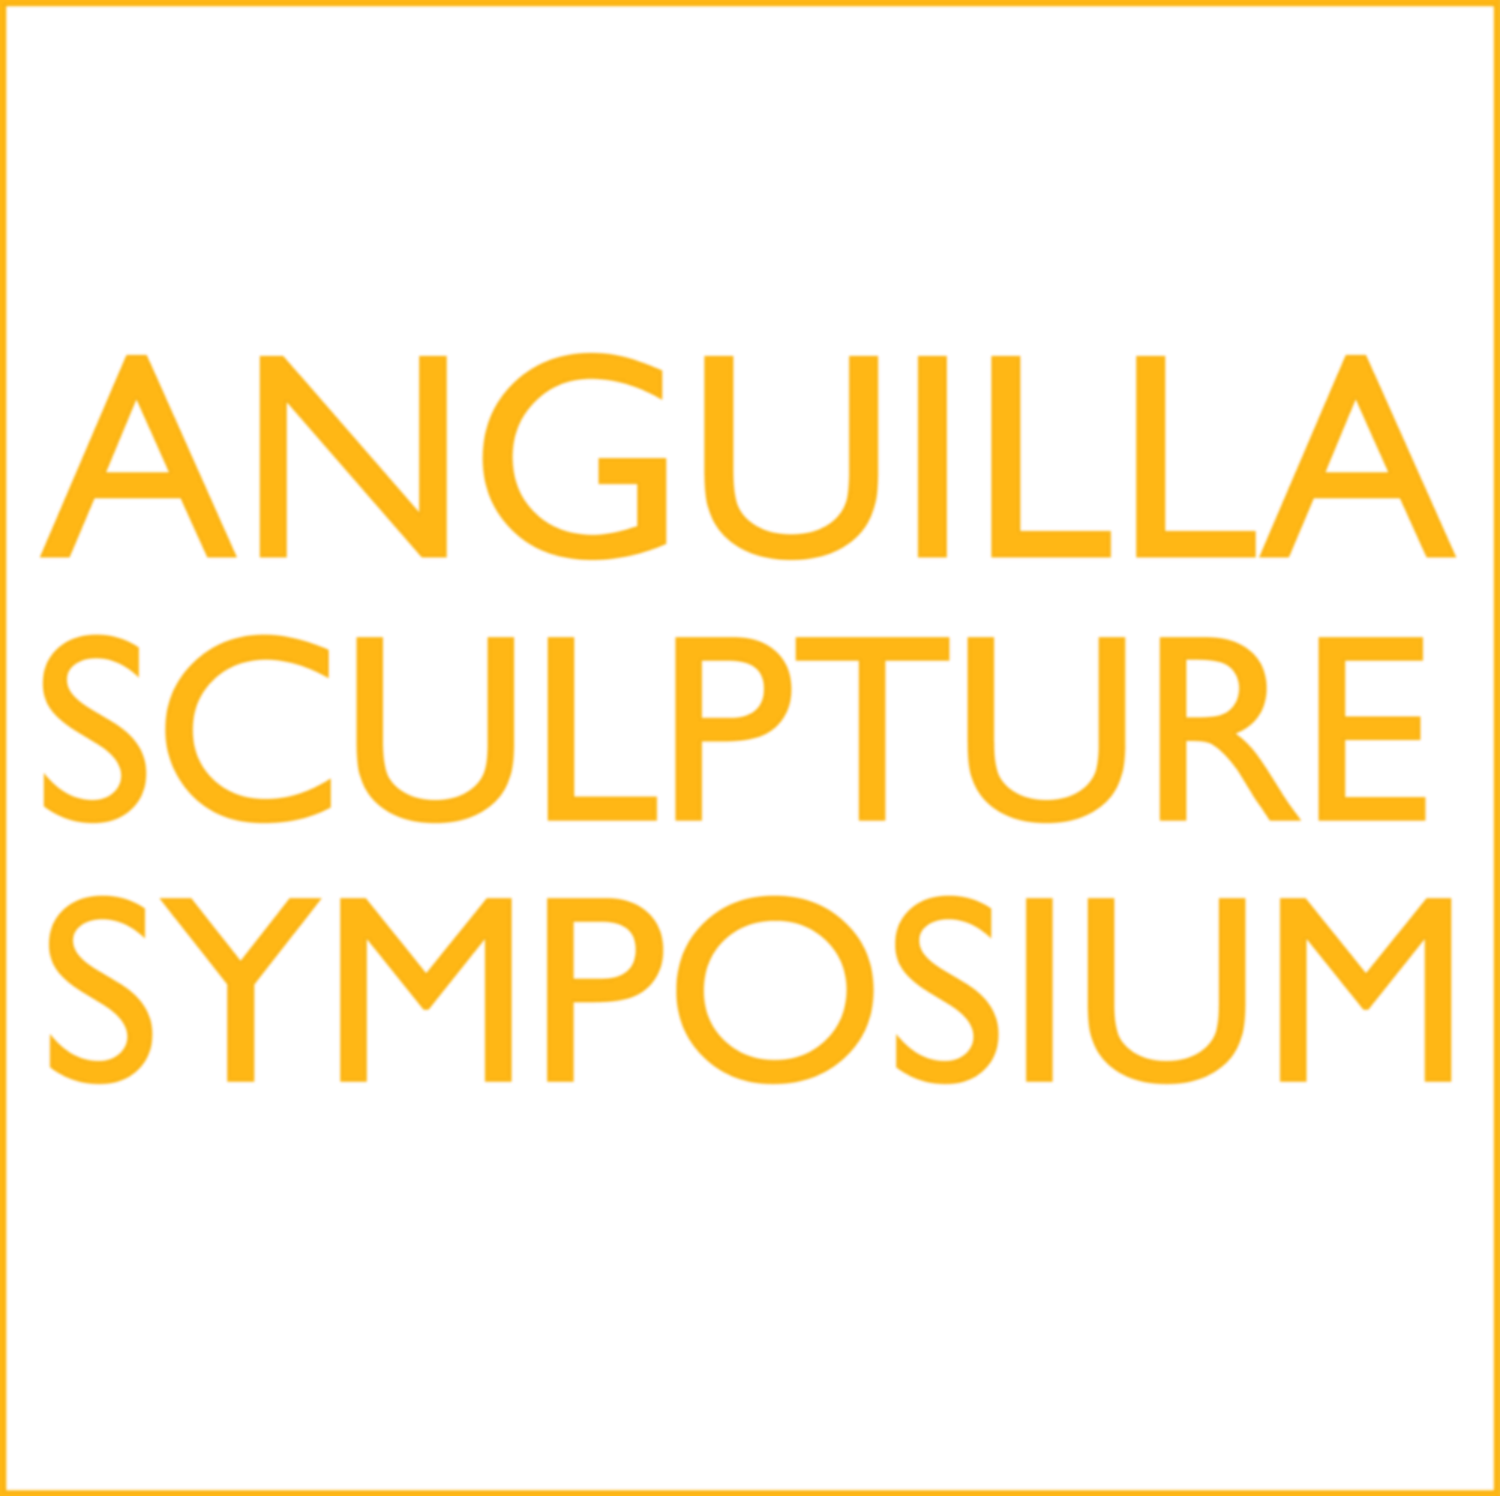 Anguilla Sculpture Symposium